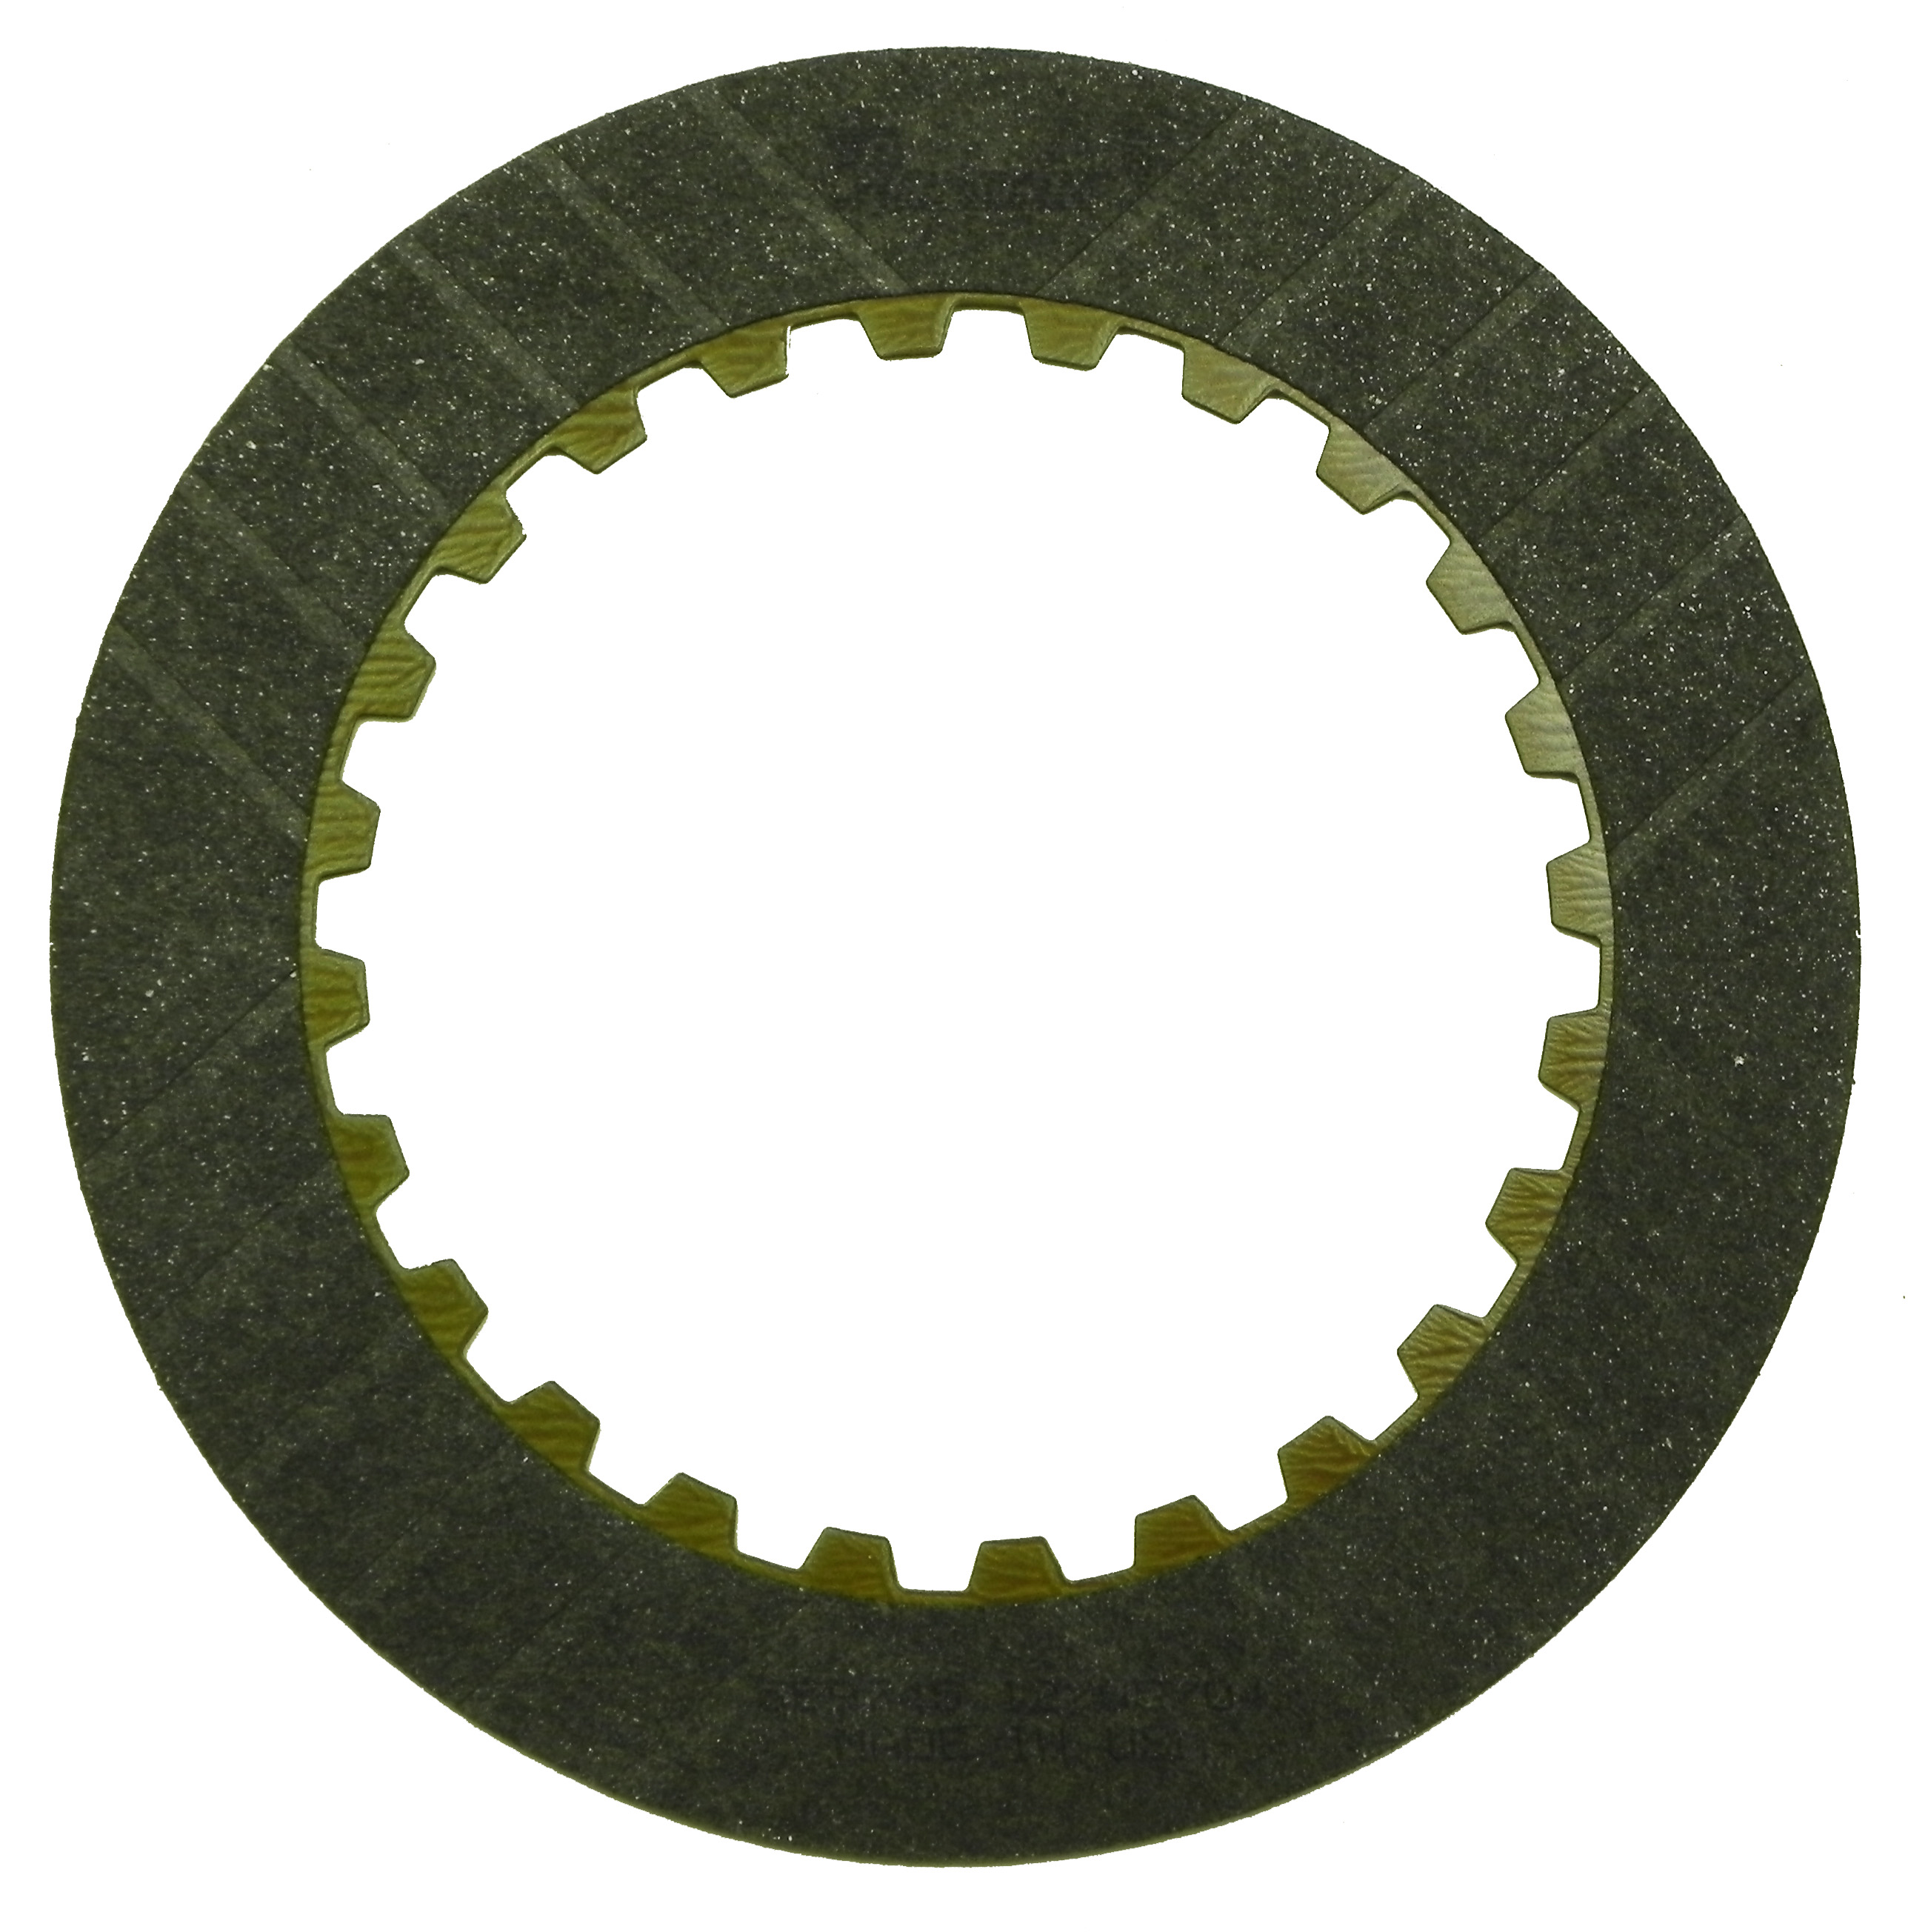 R559745 | 1981-1997 Friction Clutch Plate High Energy 4th K2 Clutch Waved